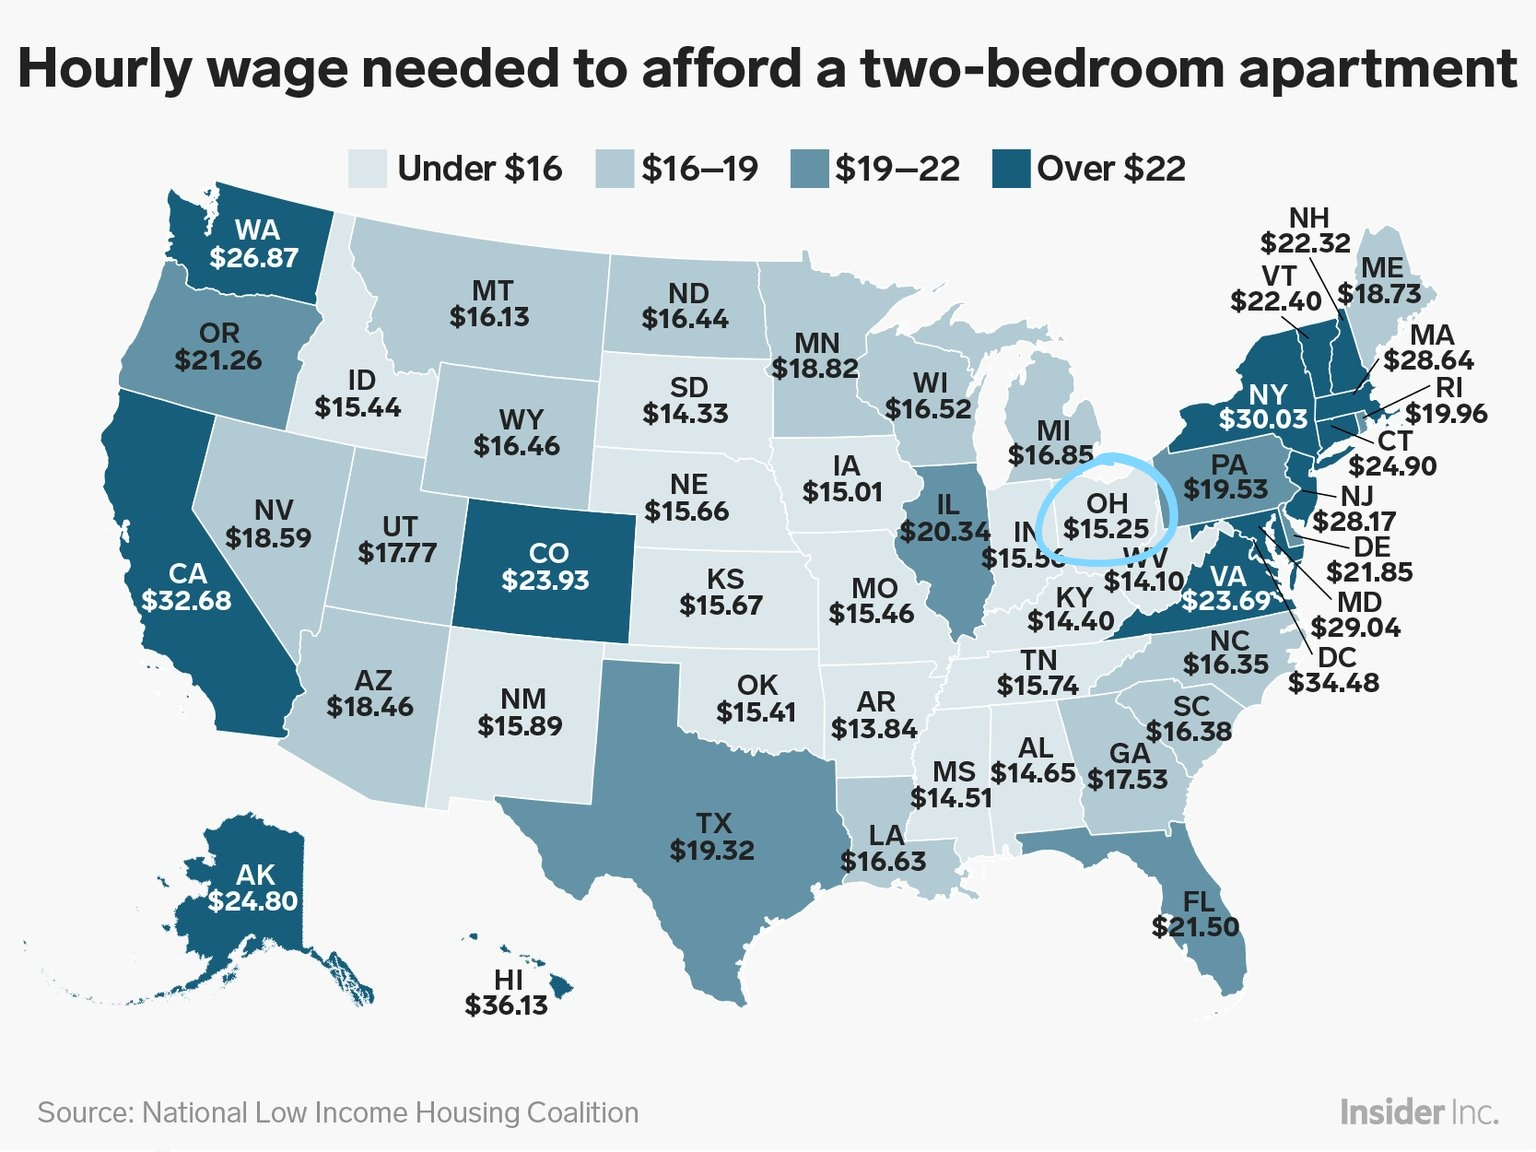 hourly wages for two bedroom apartments with Ohio circled.jpg